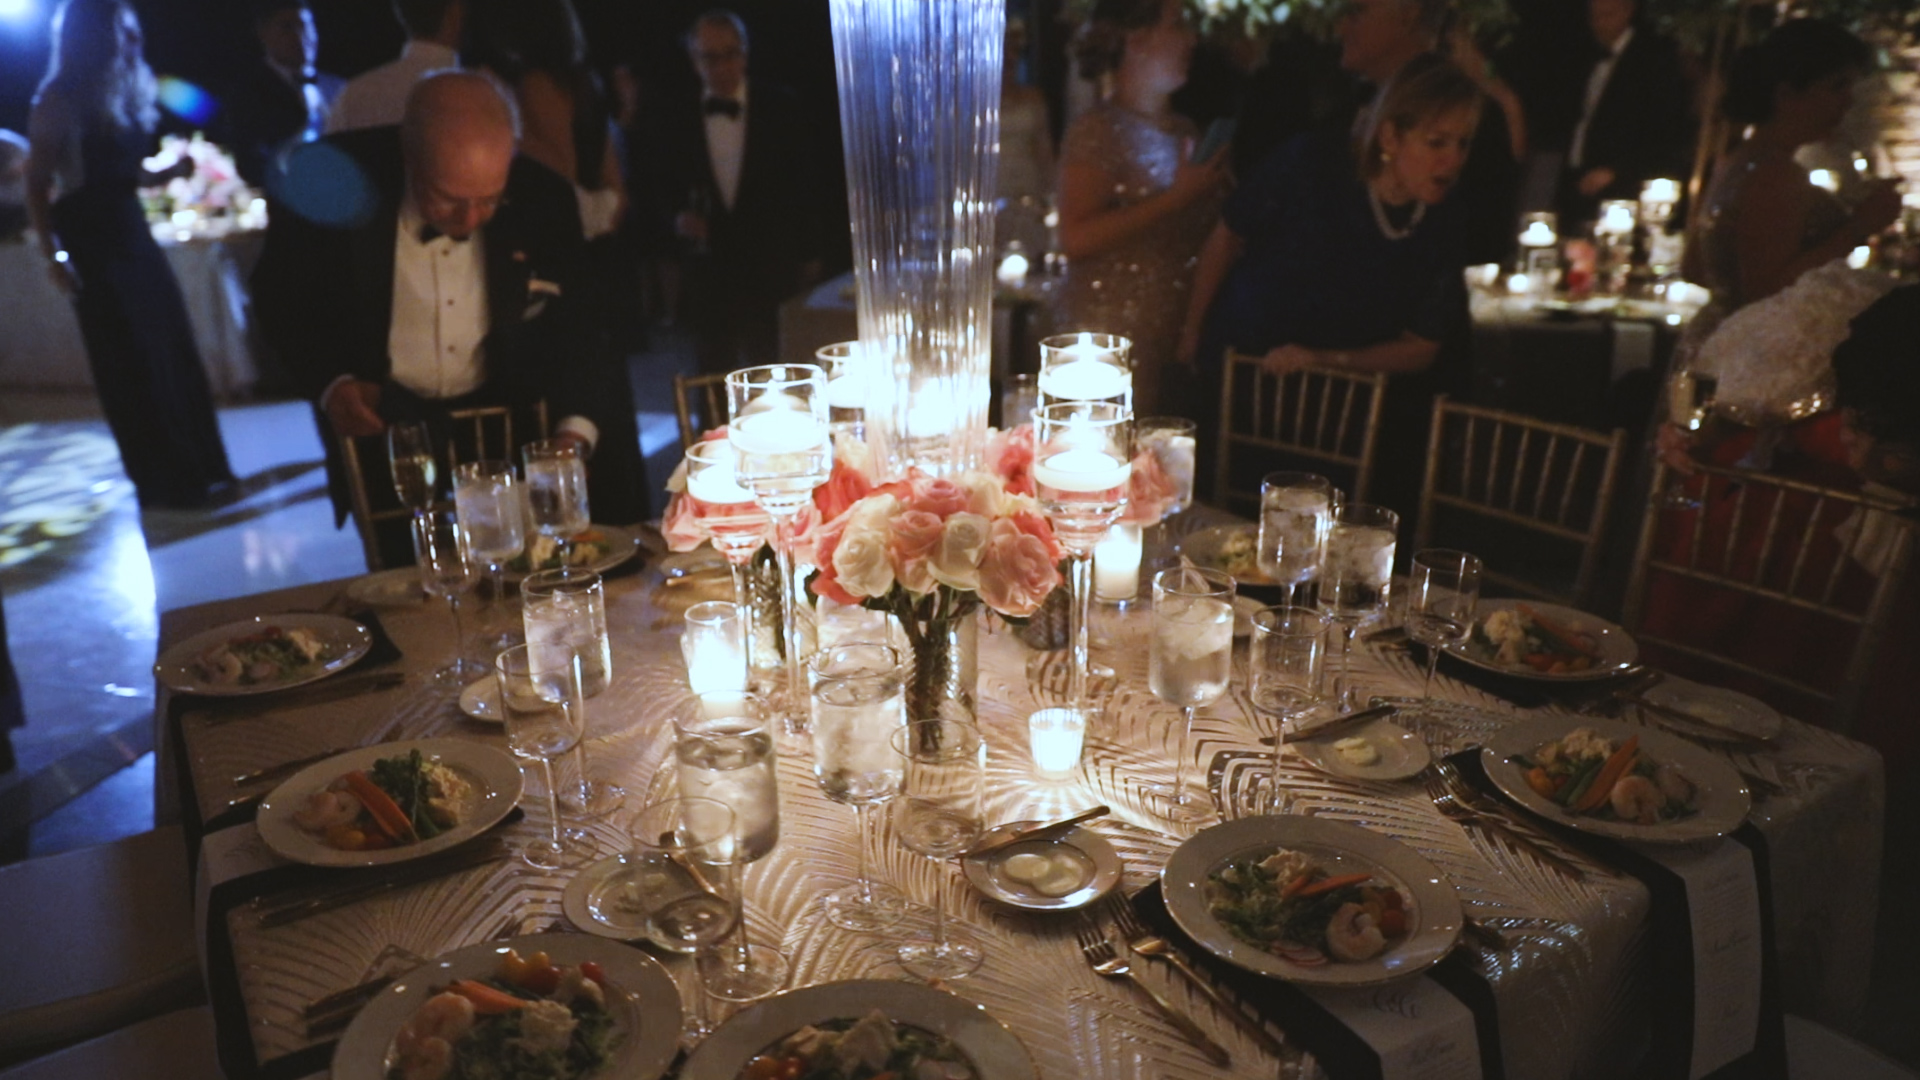 Colleen and Charles_Urban Contemporary Arts Center Wedding_New Orleans videographer_Wedding reception table detail